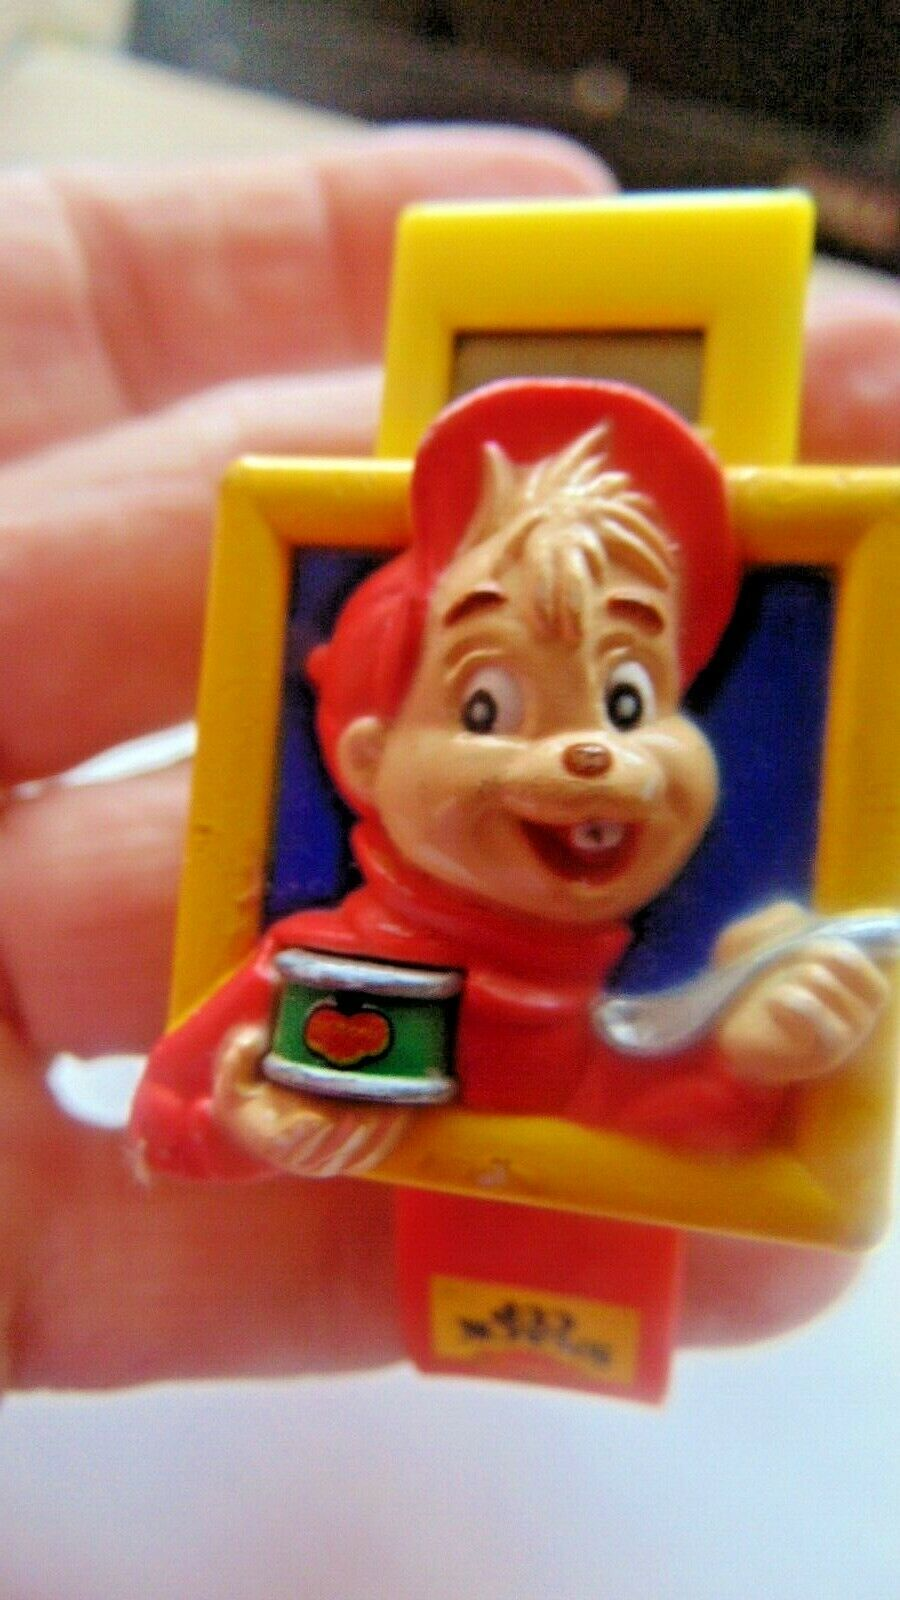 Primary image for Vintage Del Monte Snack Watch For Kid Push Snack & Top Pops Up To Tell Time